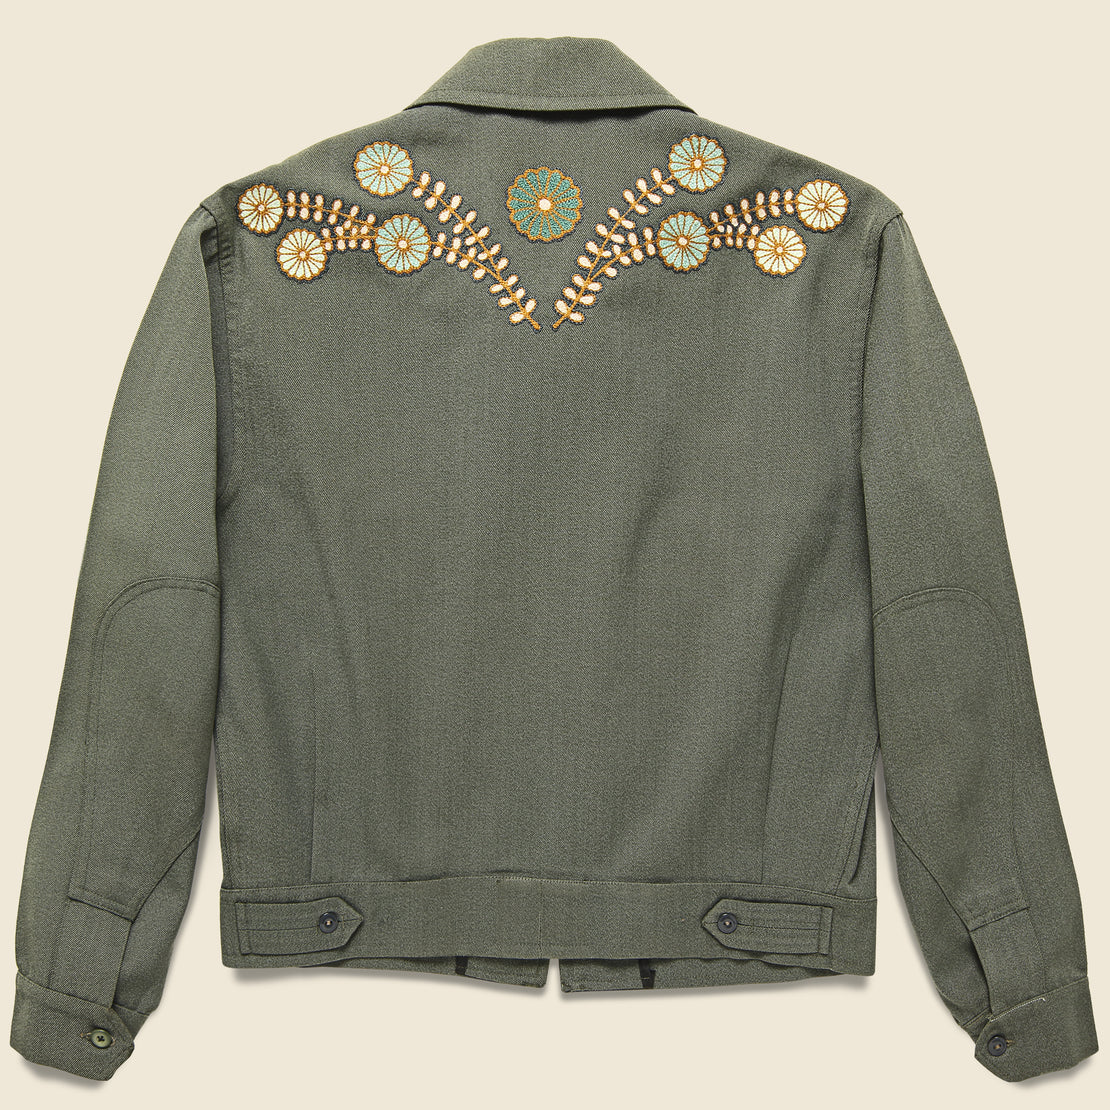 Fort Lonesome Squash Blossom Military Cropped Jacket - Sage Green